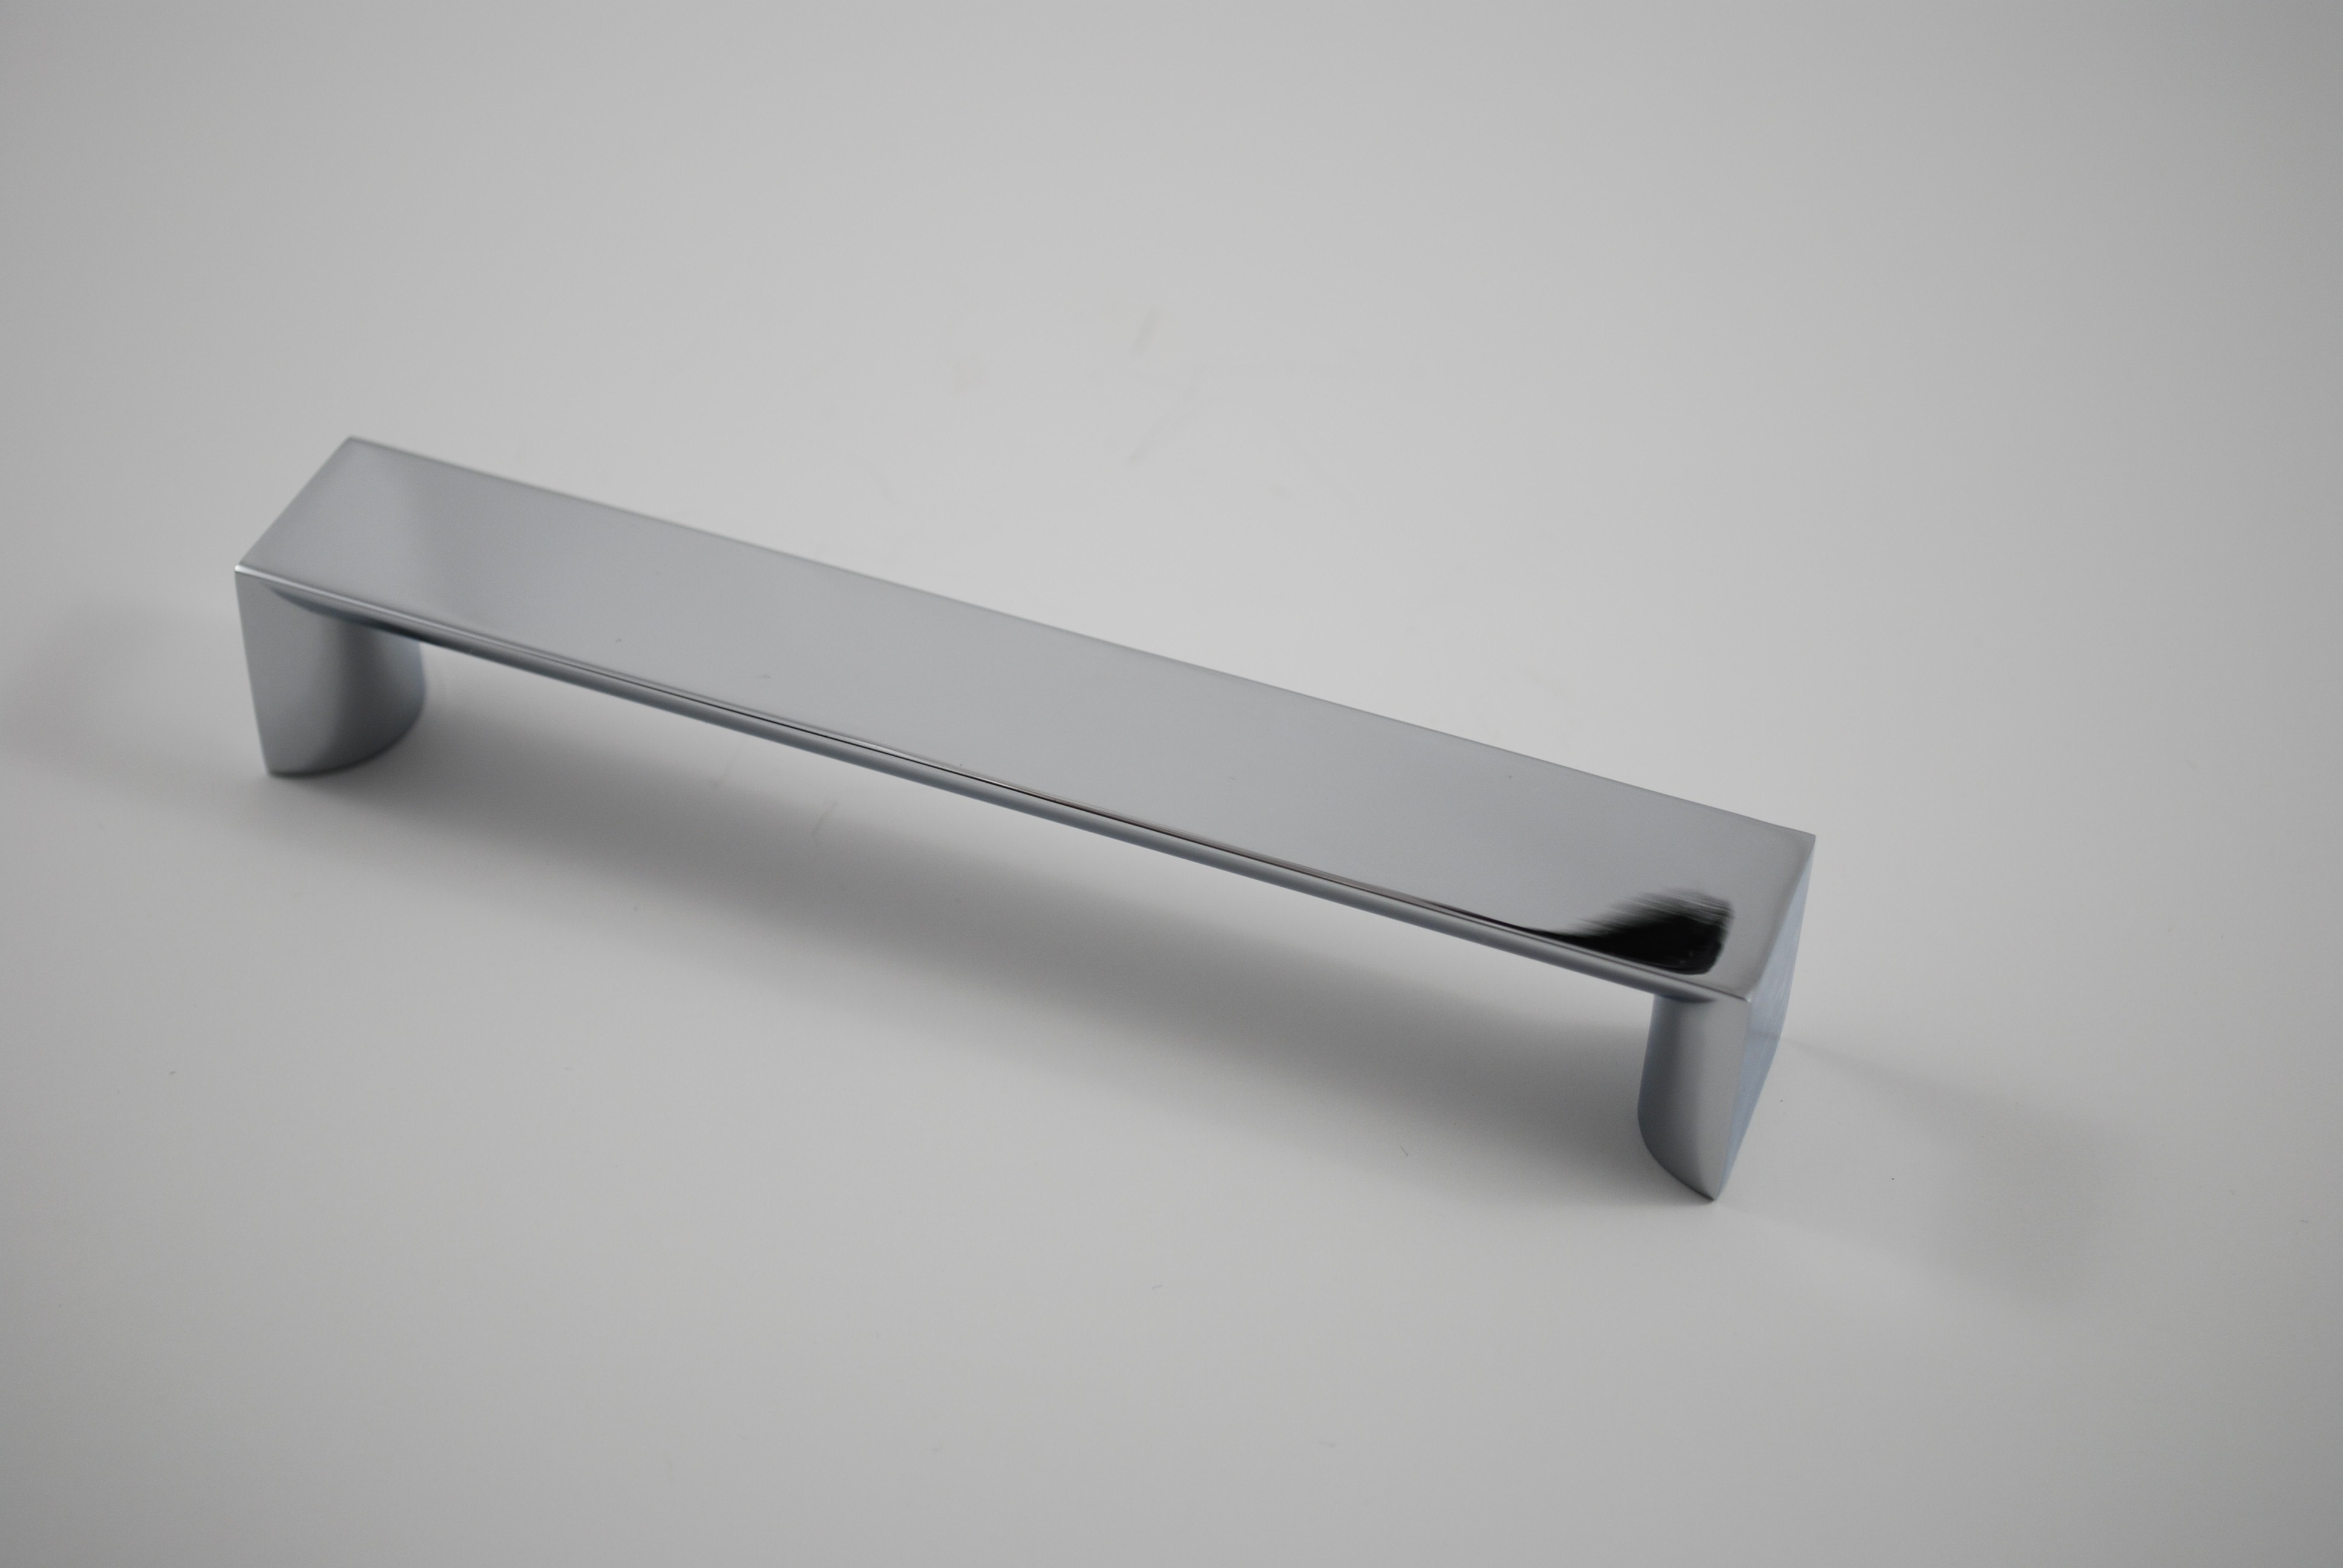 Residential Essentials 10275PC Cabinet Pull